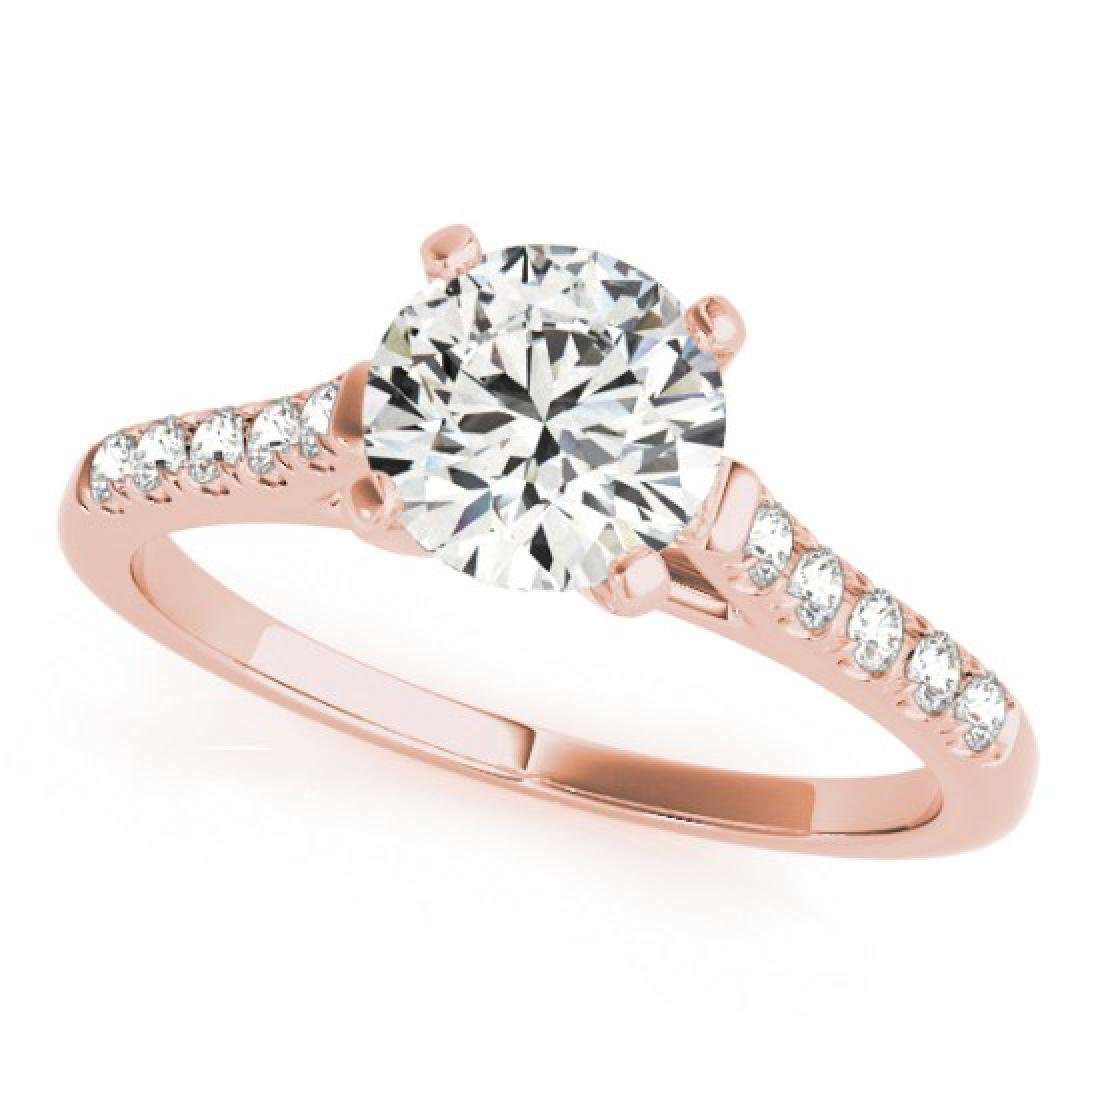 1.2 CTW Certified VS/SI Diamond Solitaire Ring 14K Rose